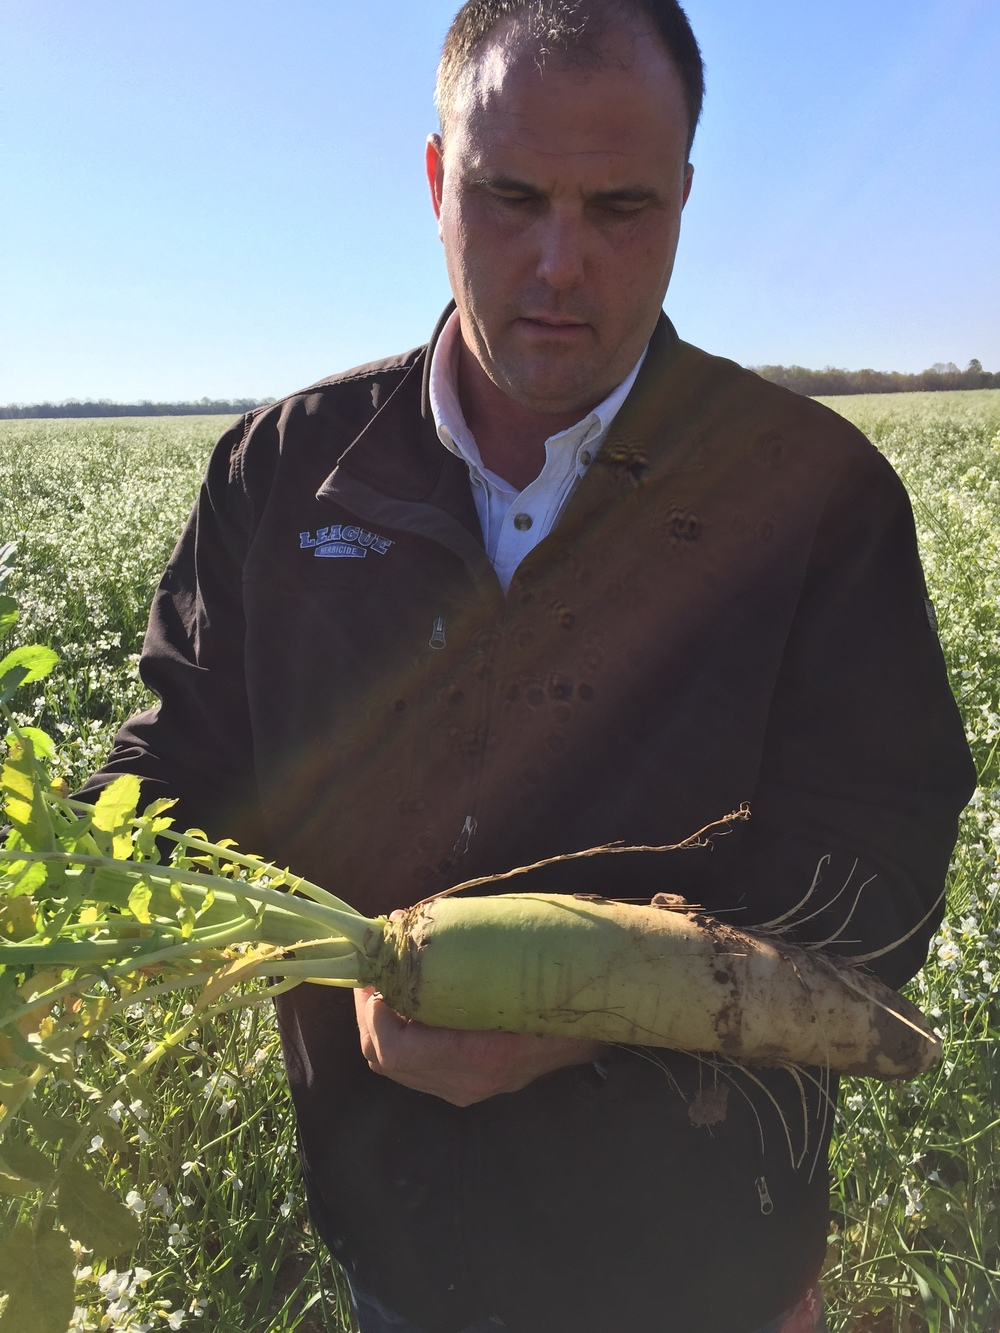 Jim holding a radish from Whitaker Farms' cover crop